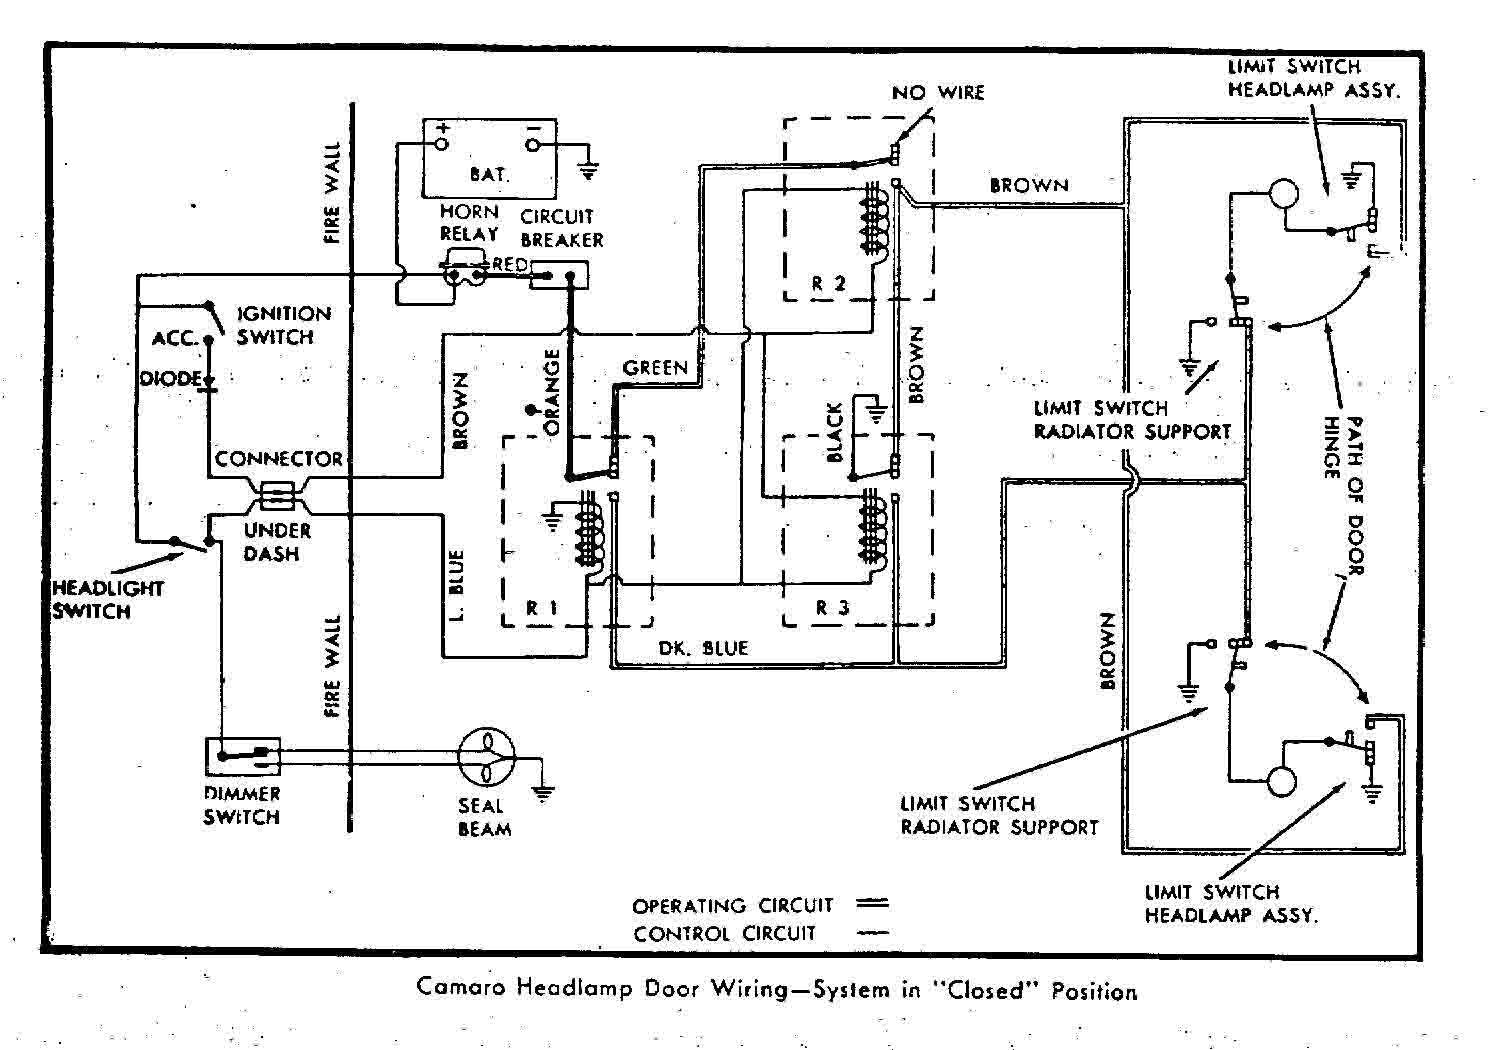 hight resolution of 1967 camaro headlight switch wiring diagram free picture wiring 1967 camaro headlight switch wiring diagram free picture